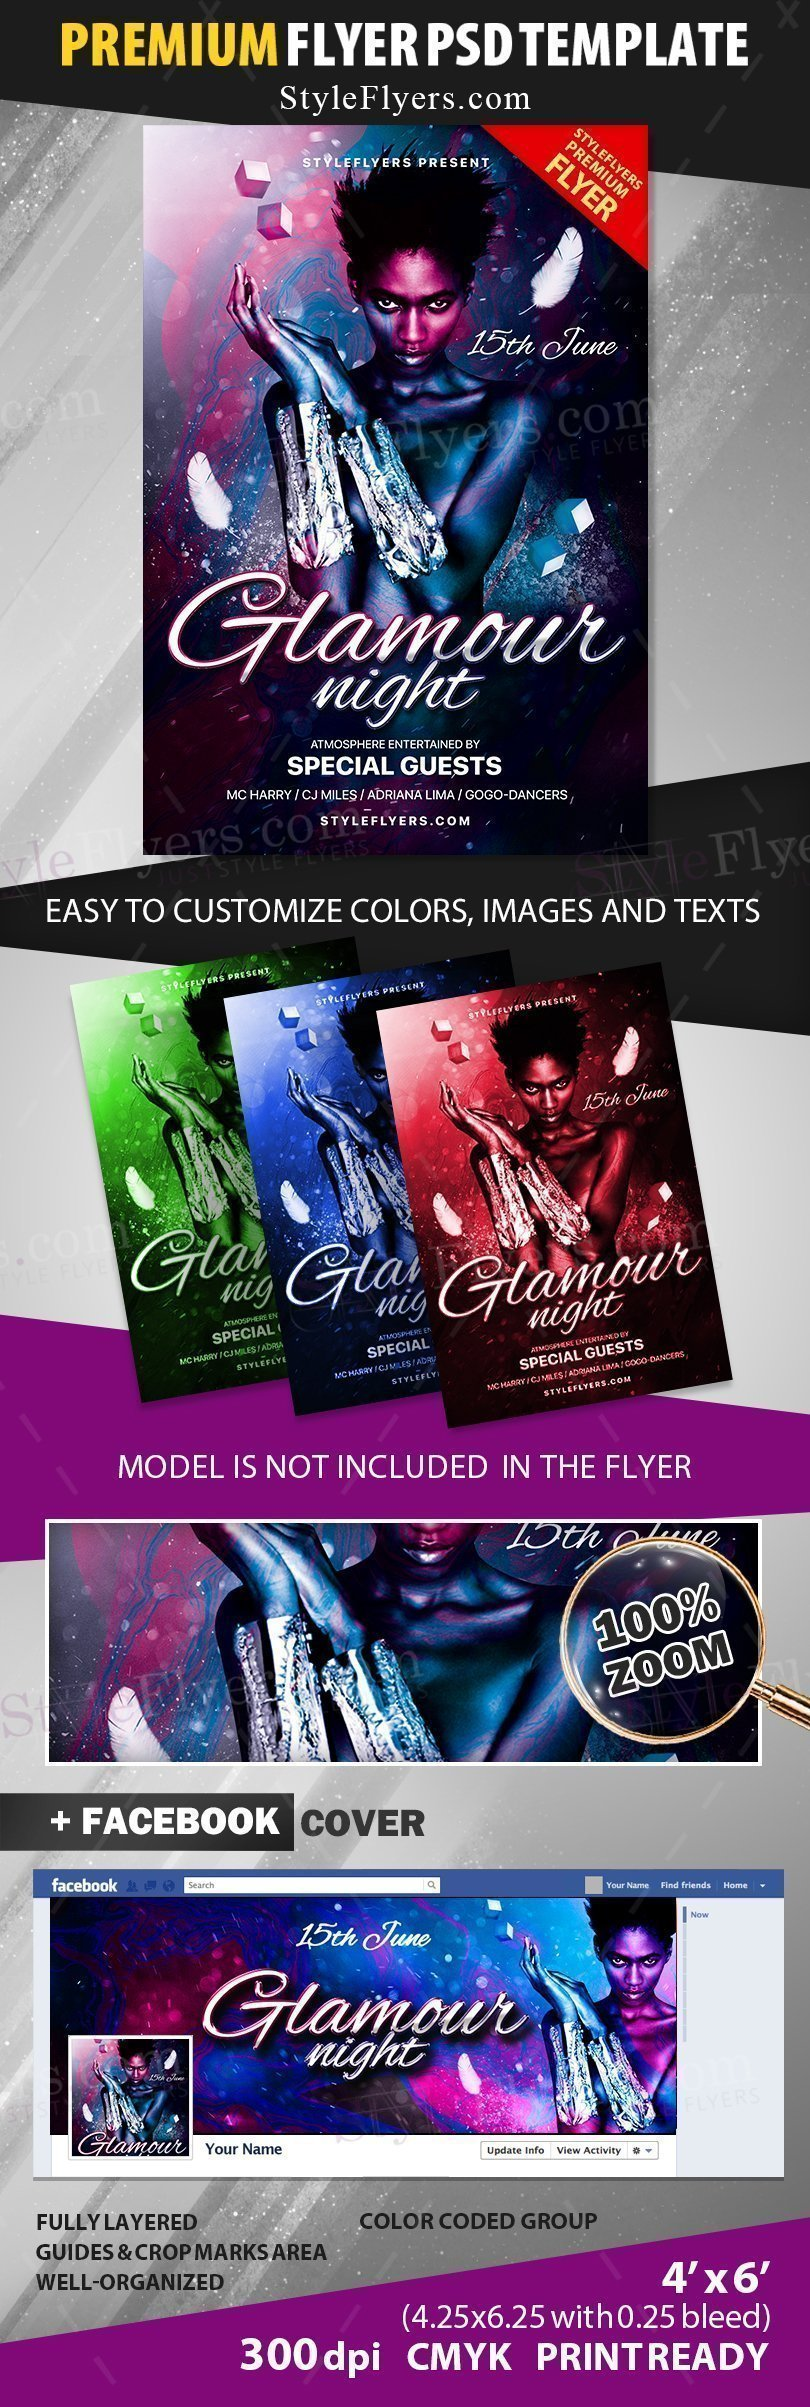 preview_Glamour Night_psd_flyer